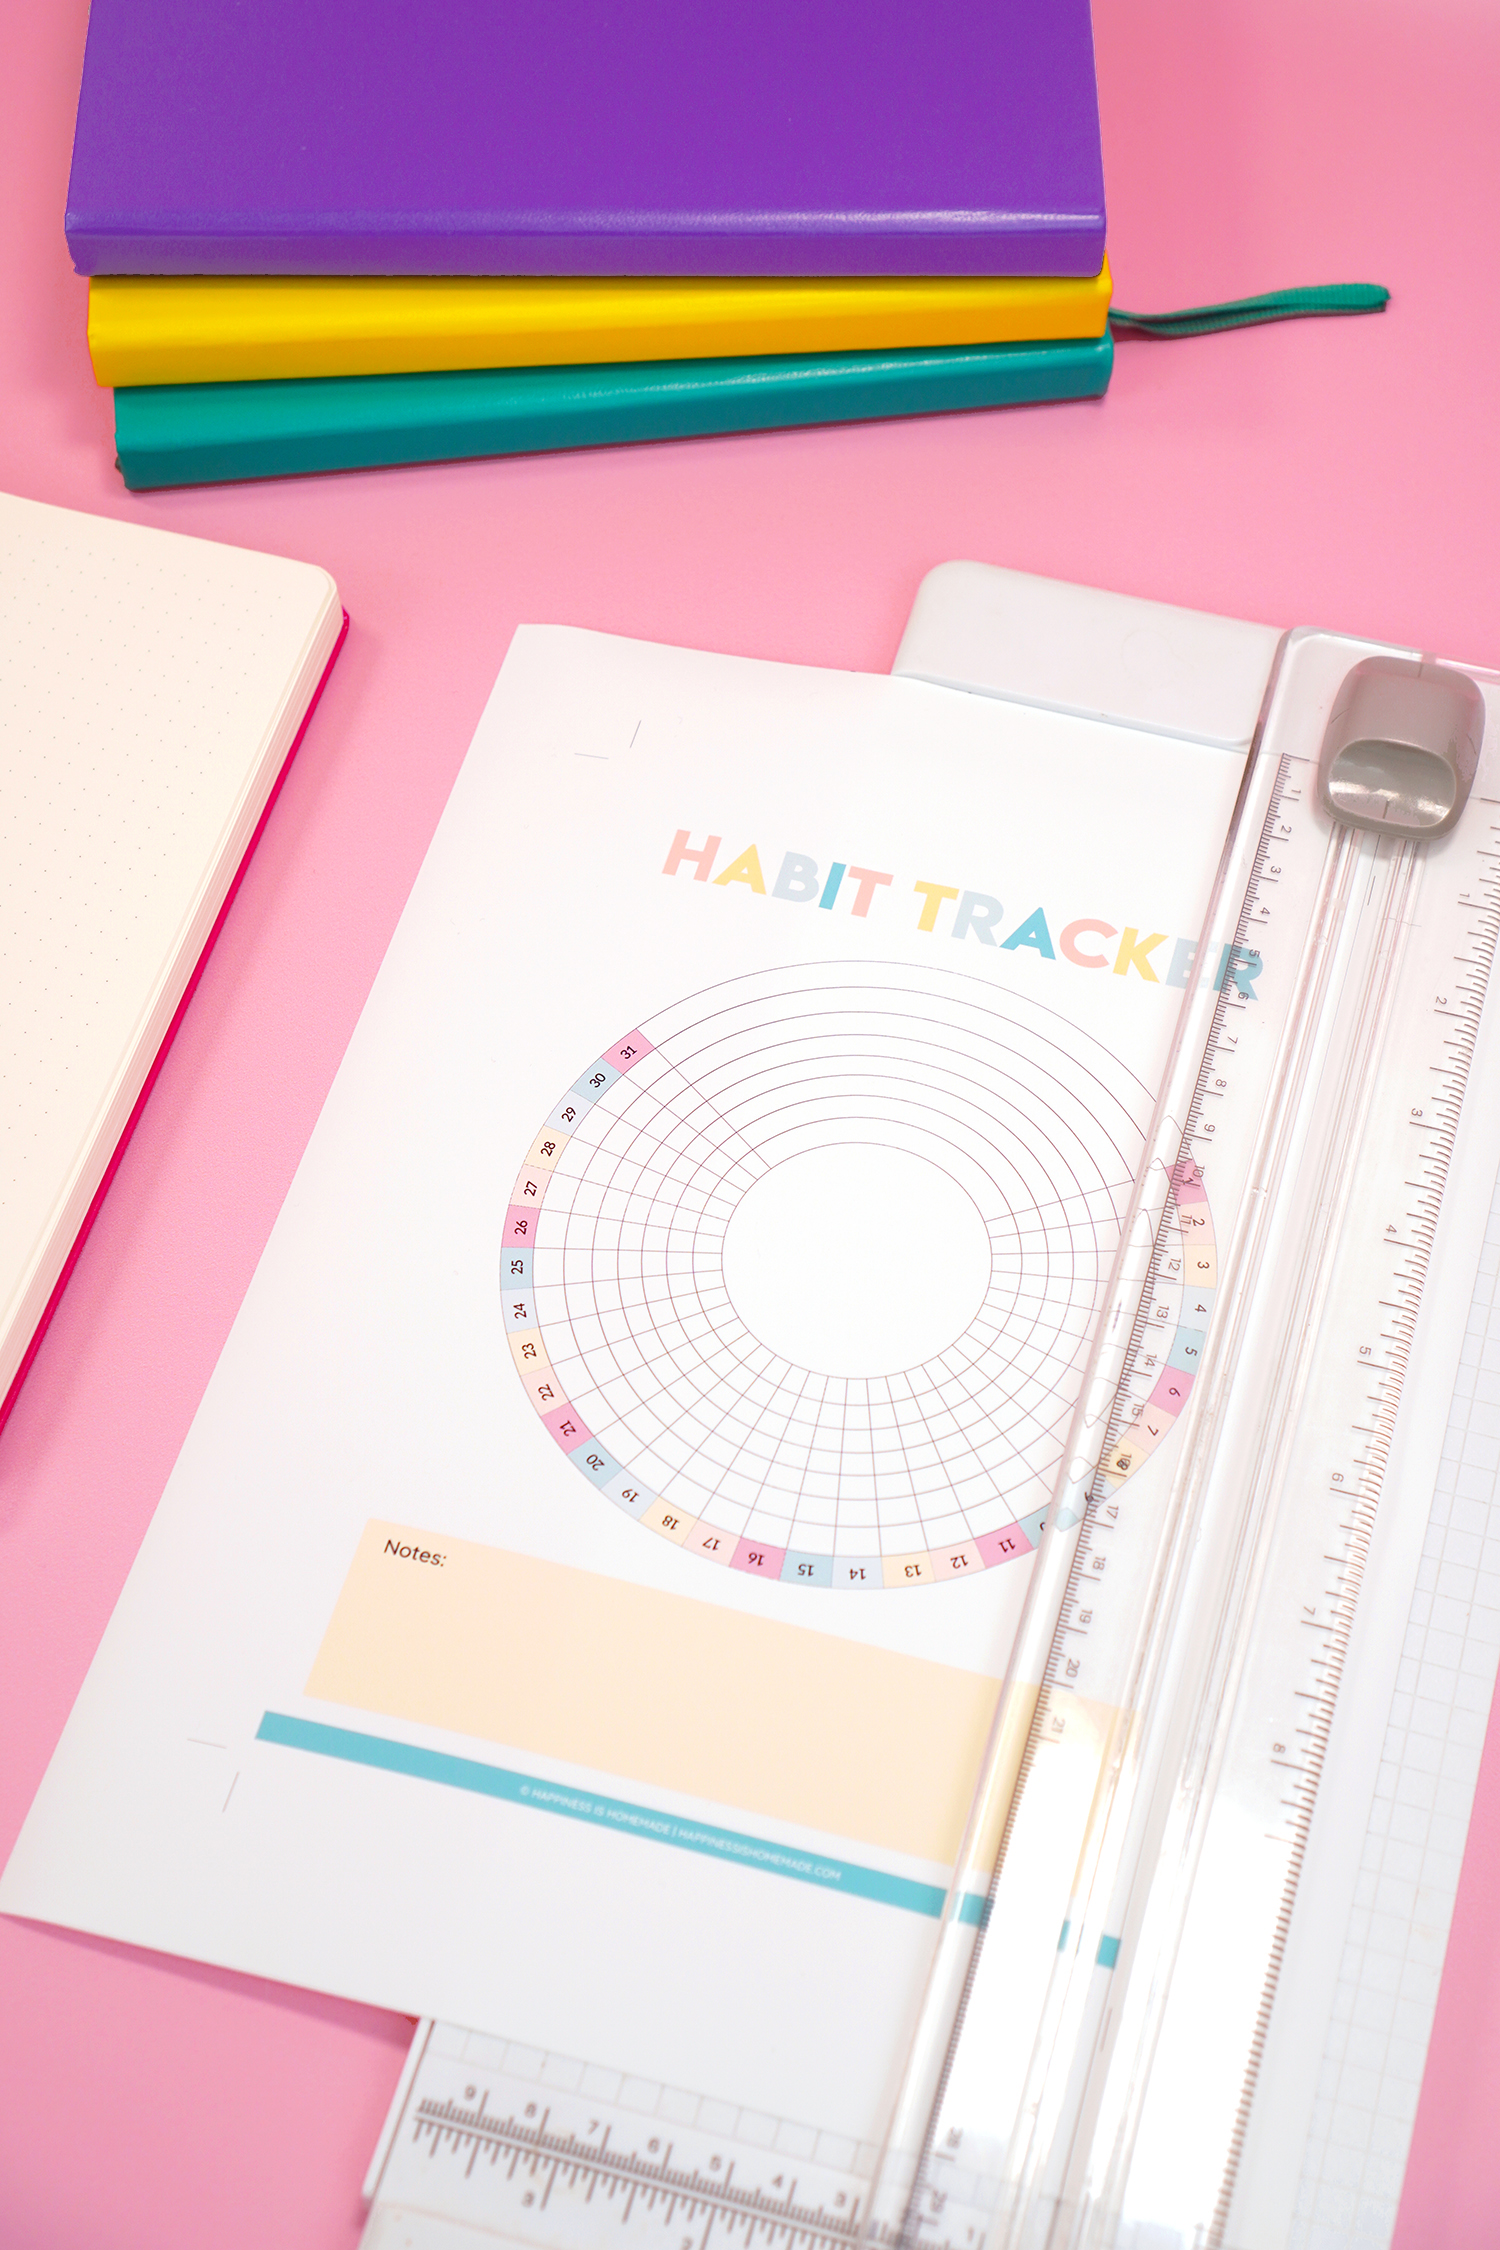 Printable Habit Tracker sheet in white paper cutter on pink background with bullet journals